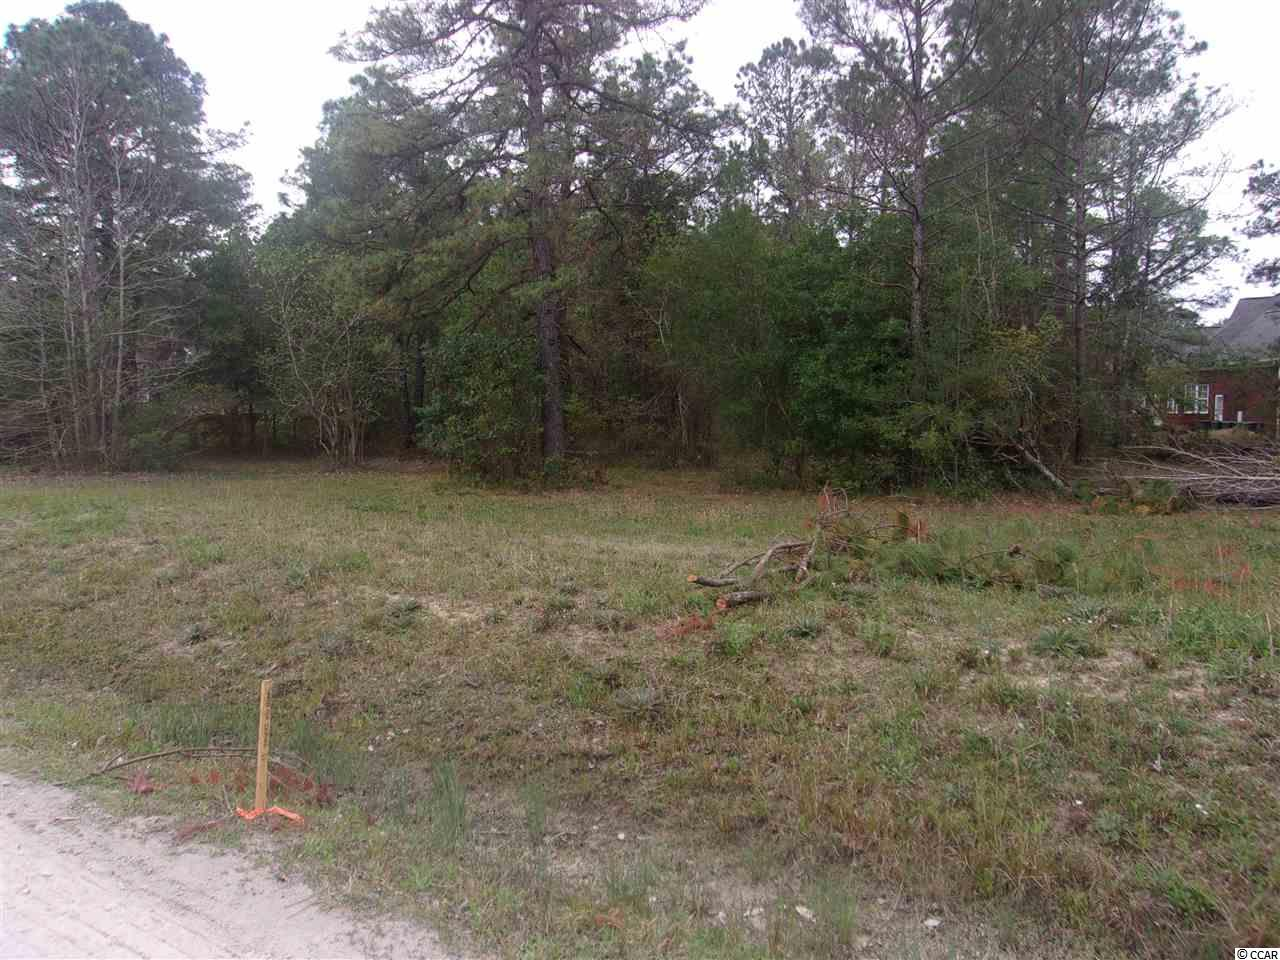 This is one of three lots on Winningham Lane.  Each lot is 1/2 acre perfect for building your desired home with no Homeowners Association.  Lots have already been cleared and subdivided, awaiting approval from the County.  Seller is adding a deed restriction to each lot restricting them from being used for mobile or manufactured homes.  Great location close to all amenities such as shopping, dining, beaches, golf courses and entertainment.